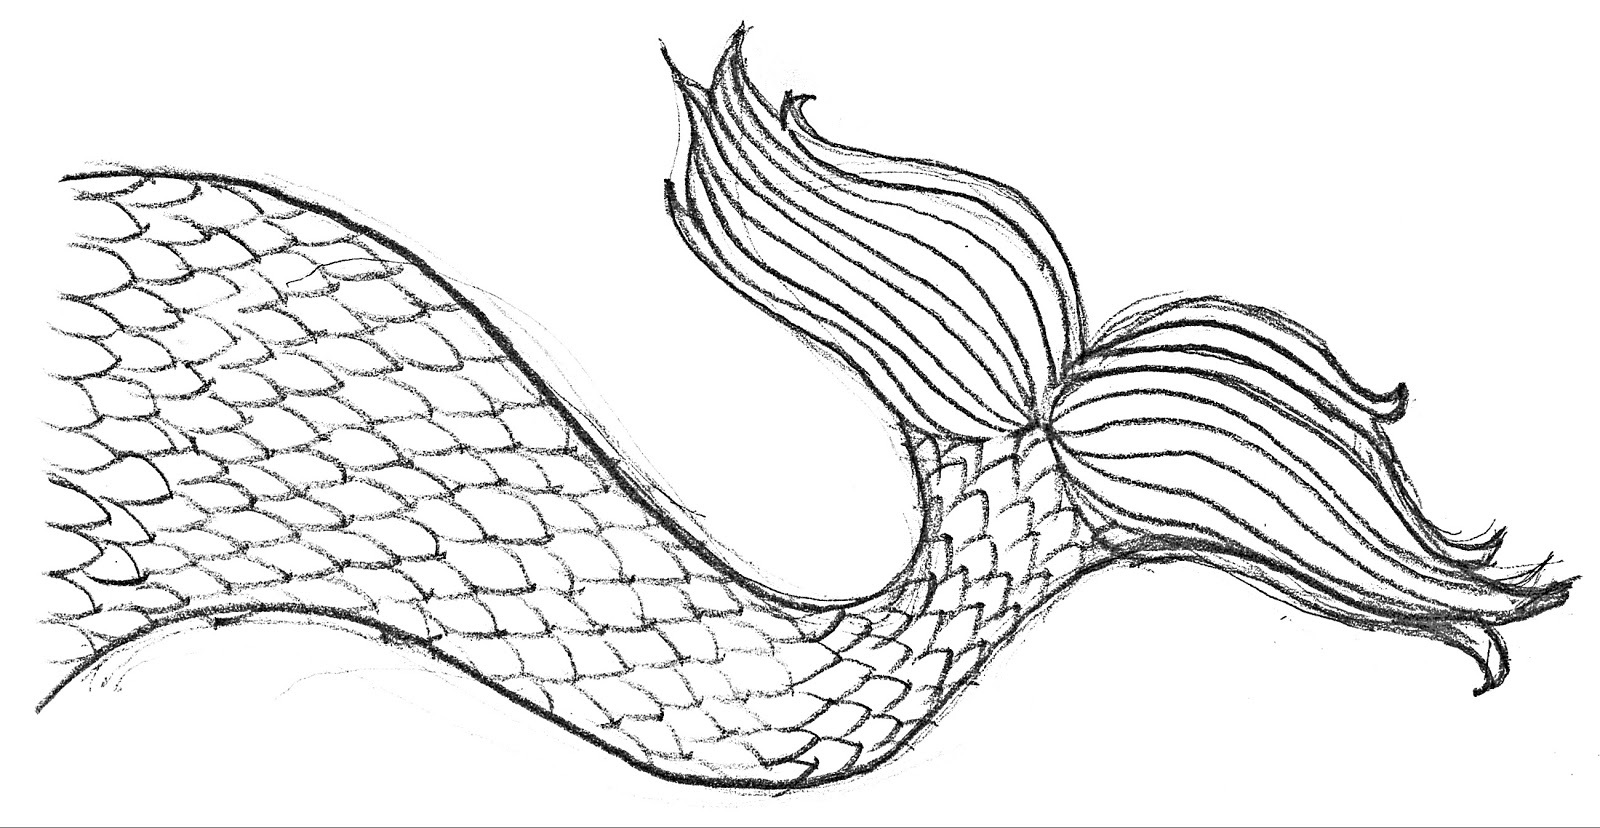 coloring pages of mermaid tails mermaid tail sheets coloring pages coloring tails mermaid of pages